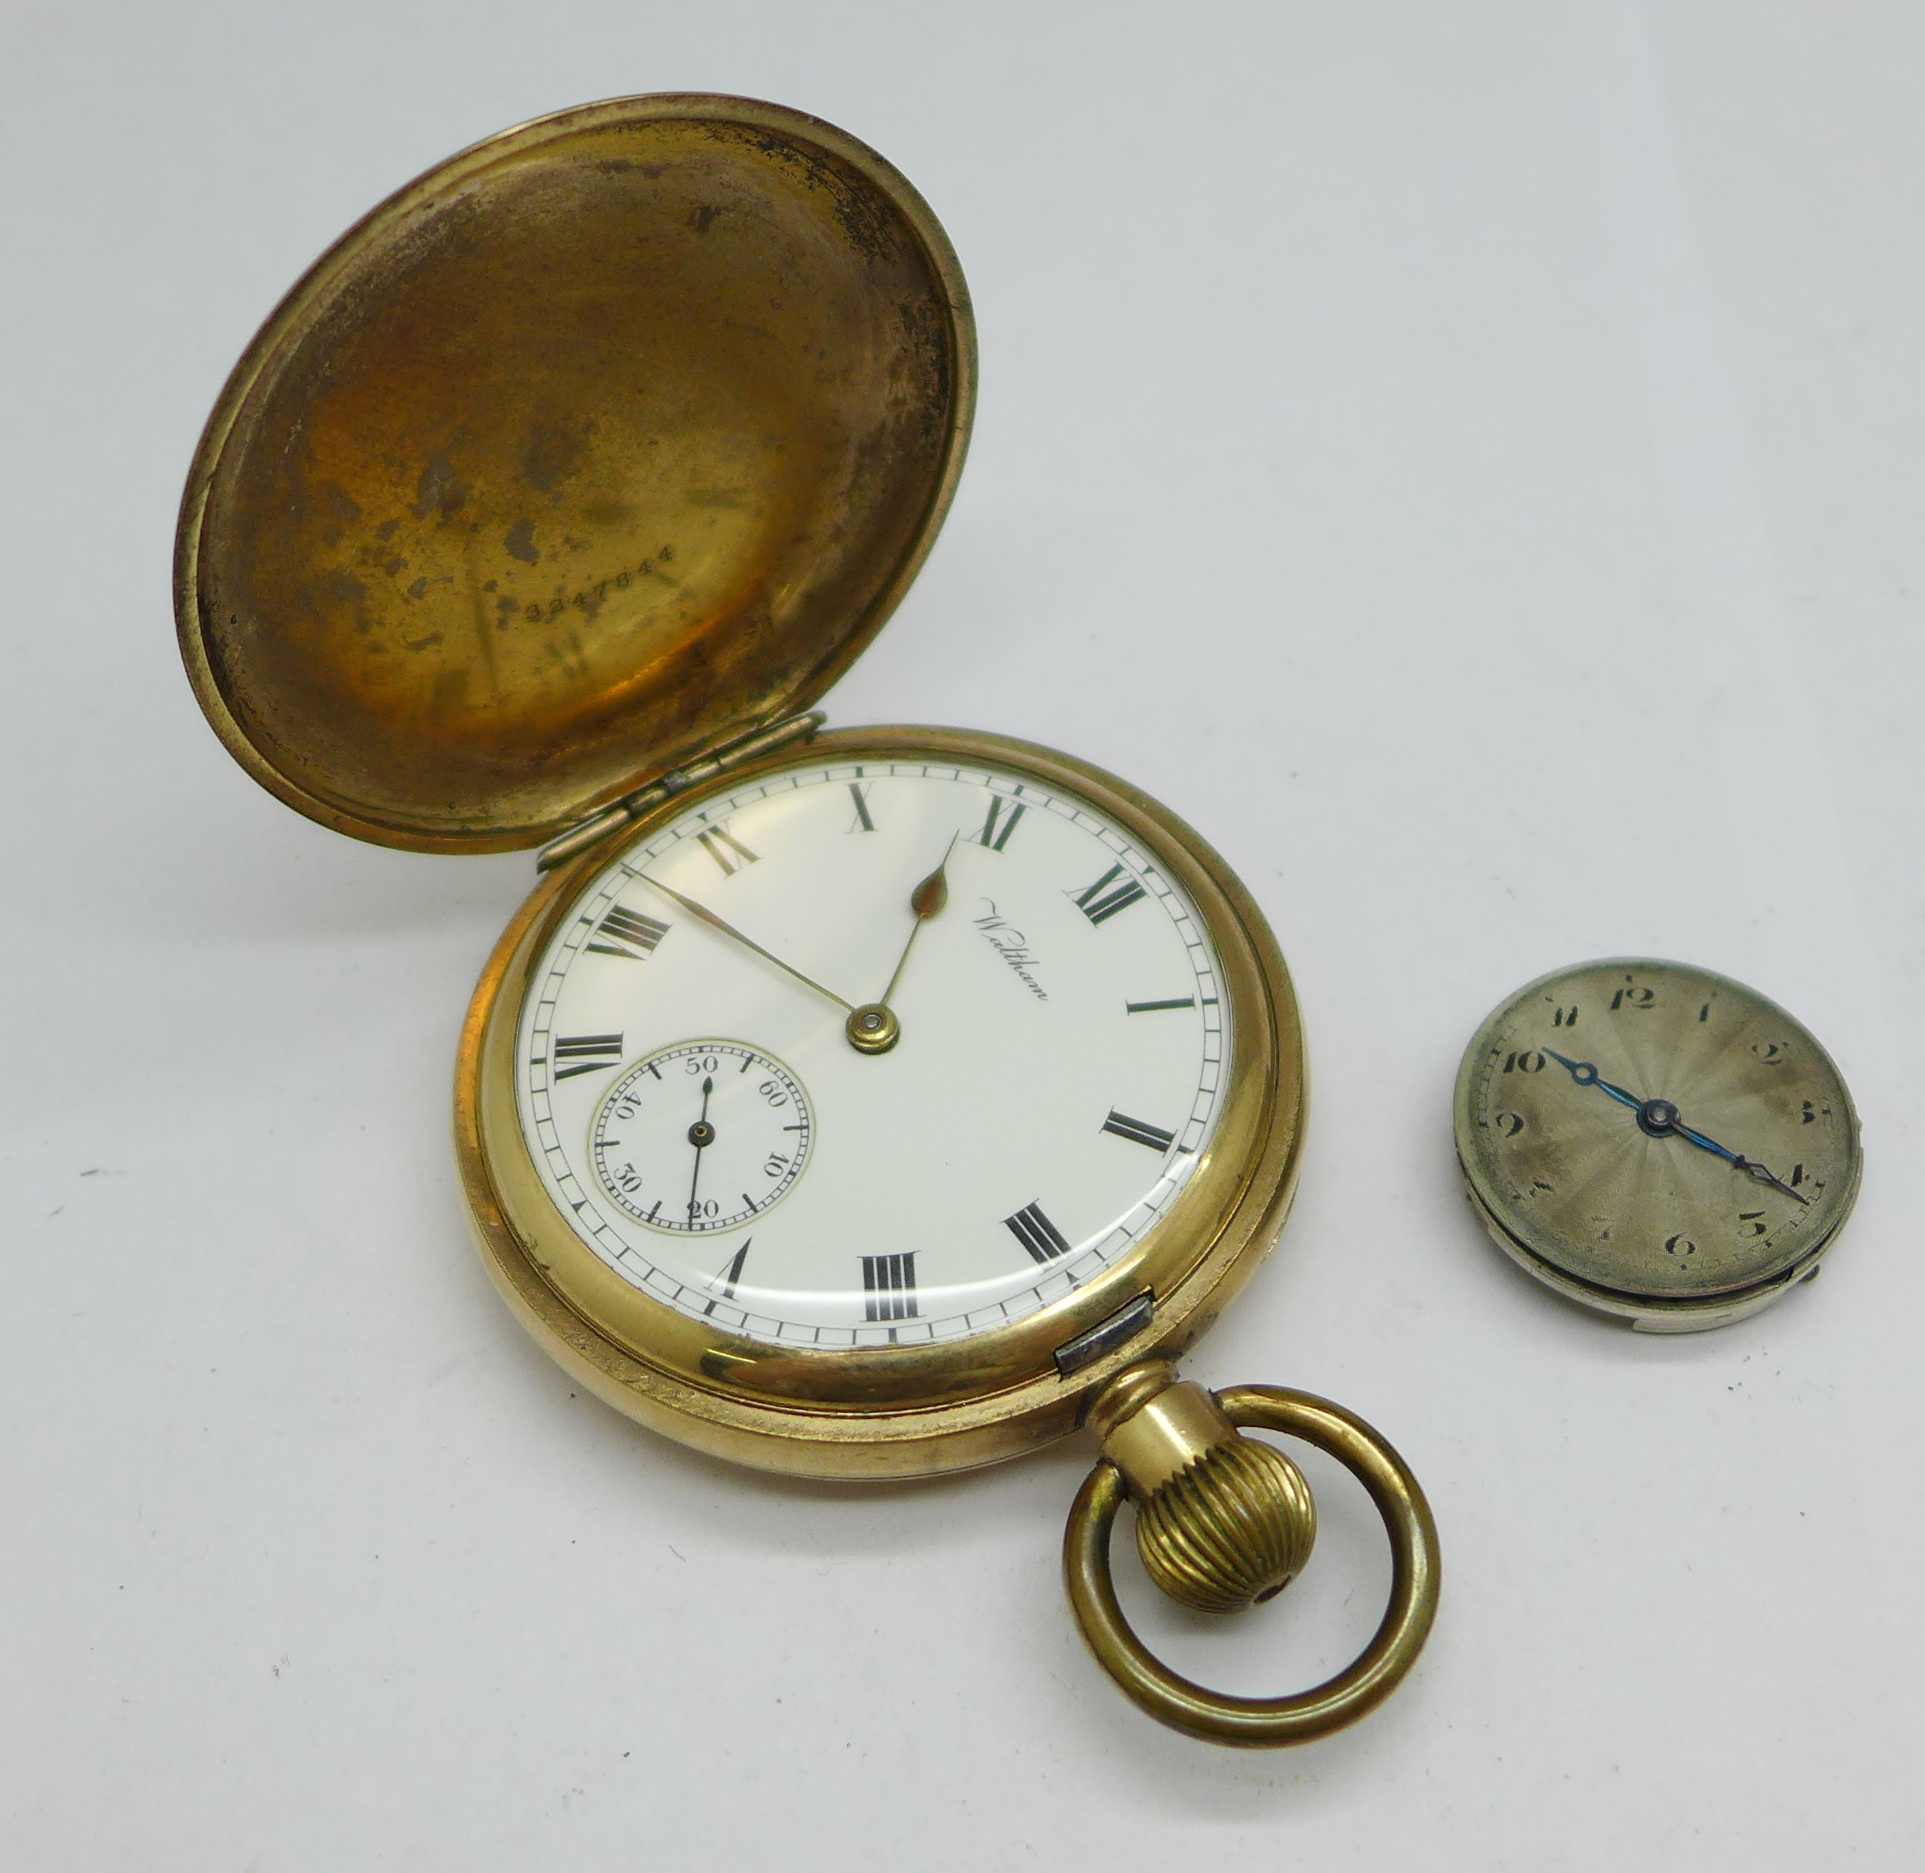 A Rolex wristwatch movement, 23mm, and a Waltham Giant gold plated full hunter pocket watch